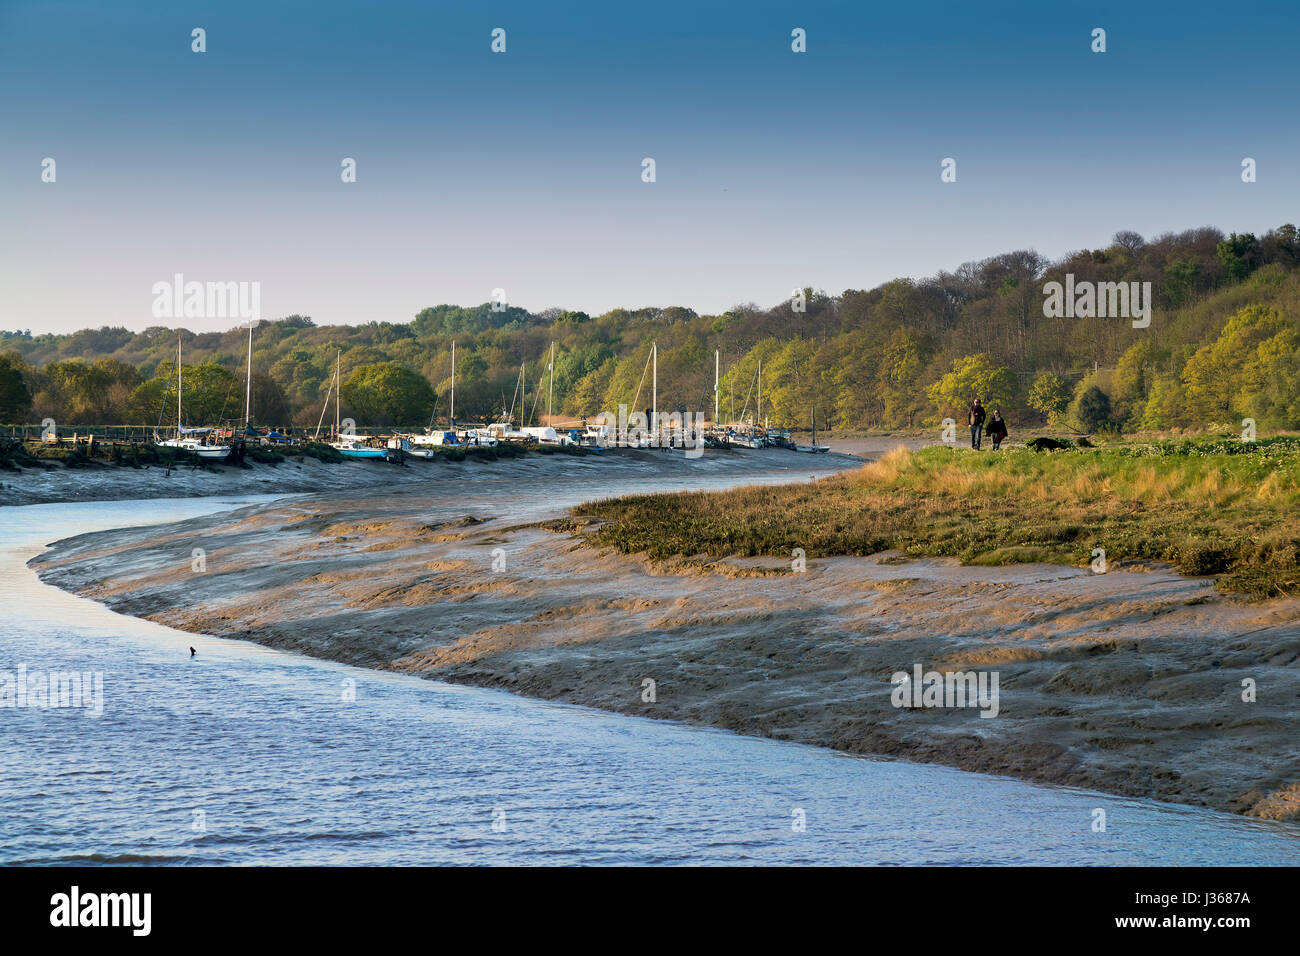 WALKERS ON THE FOOTPATH AT WIVENHOE NEAR COLCHESTER, AS VIEWED FROM ROWHEDGE ACROSS THE RIVER COLNE. - Stock Image